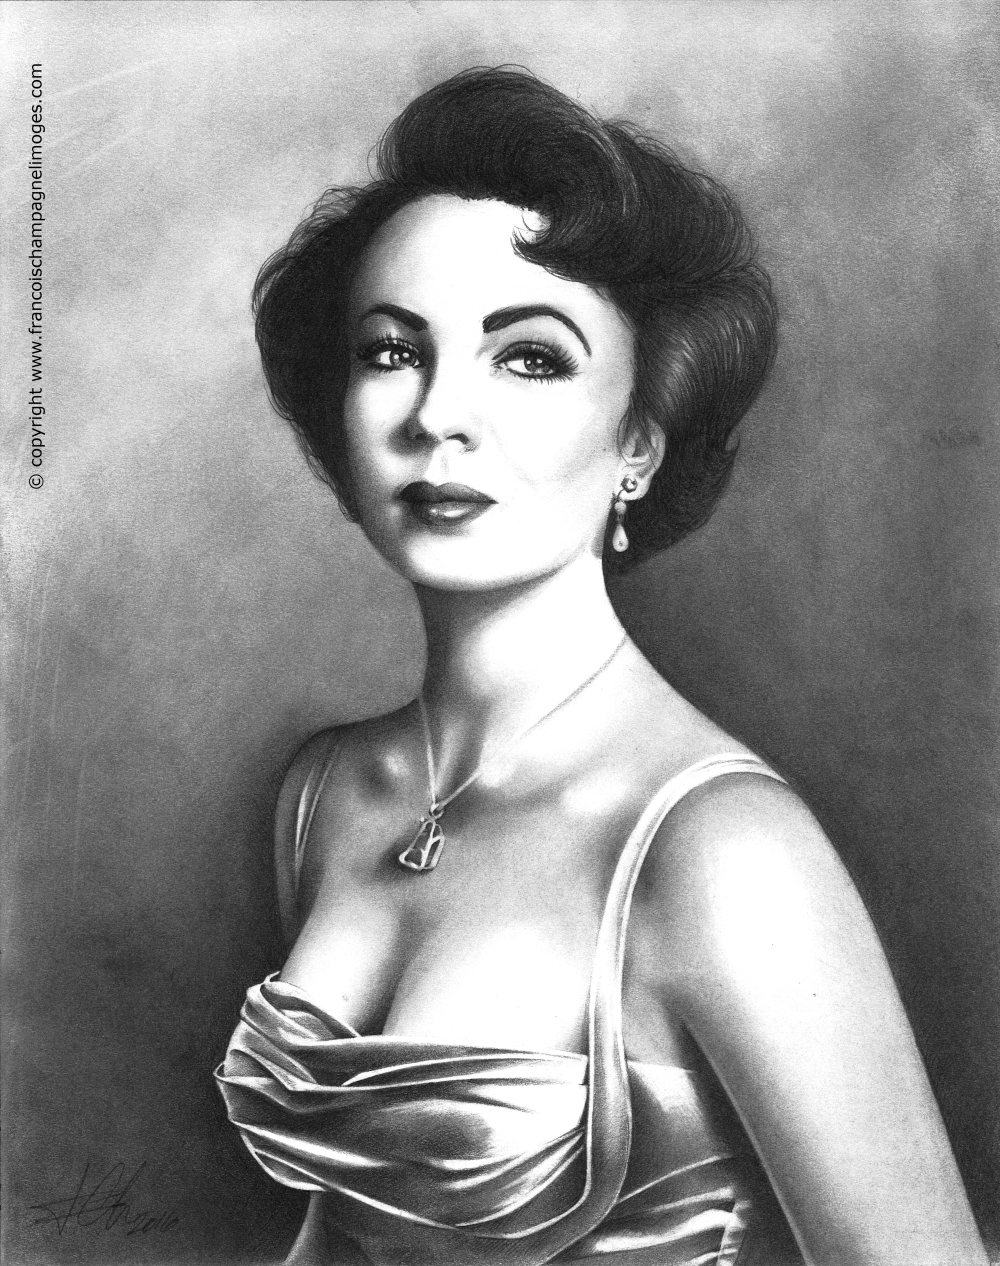 Elizabeth_Taylor_New_Scan_600dpi_DARKER_w_copyright